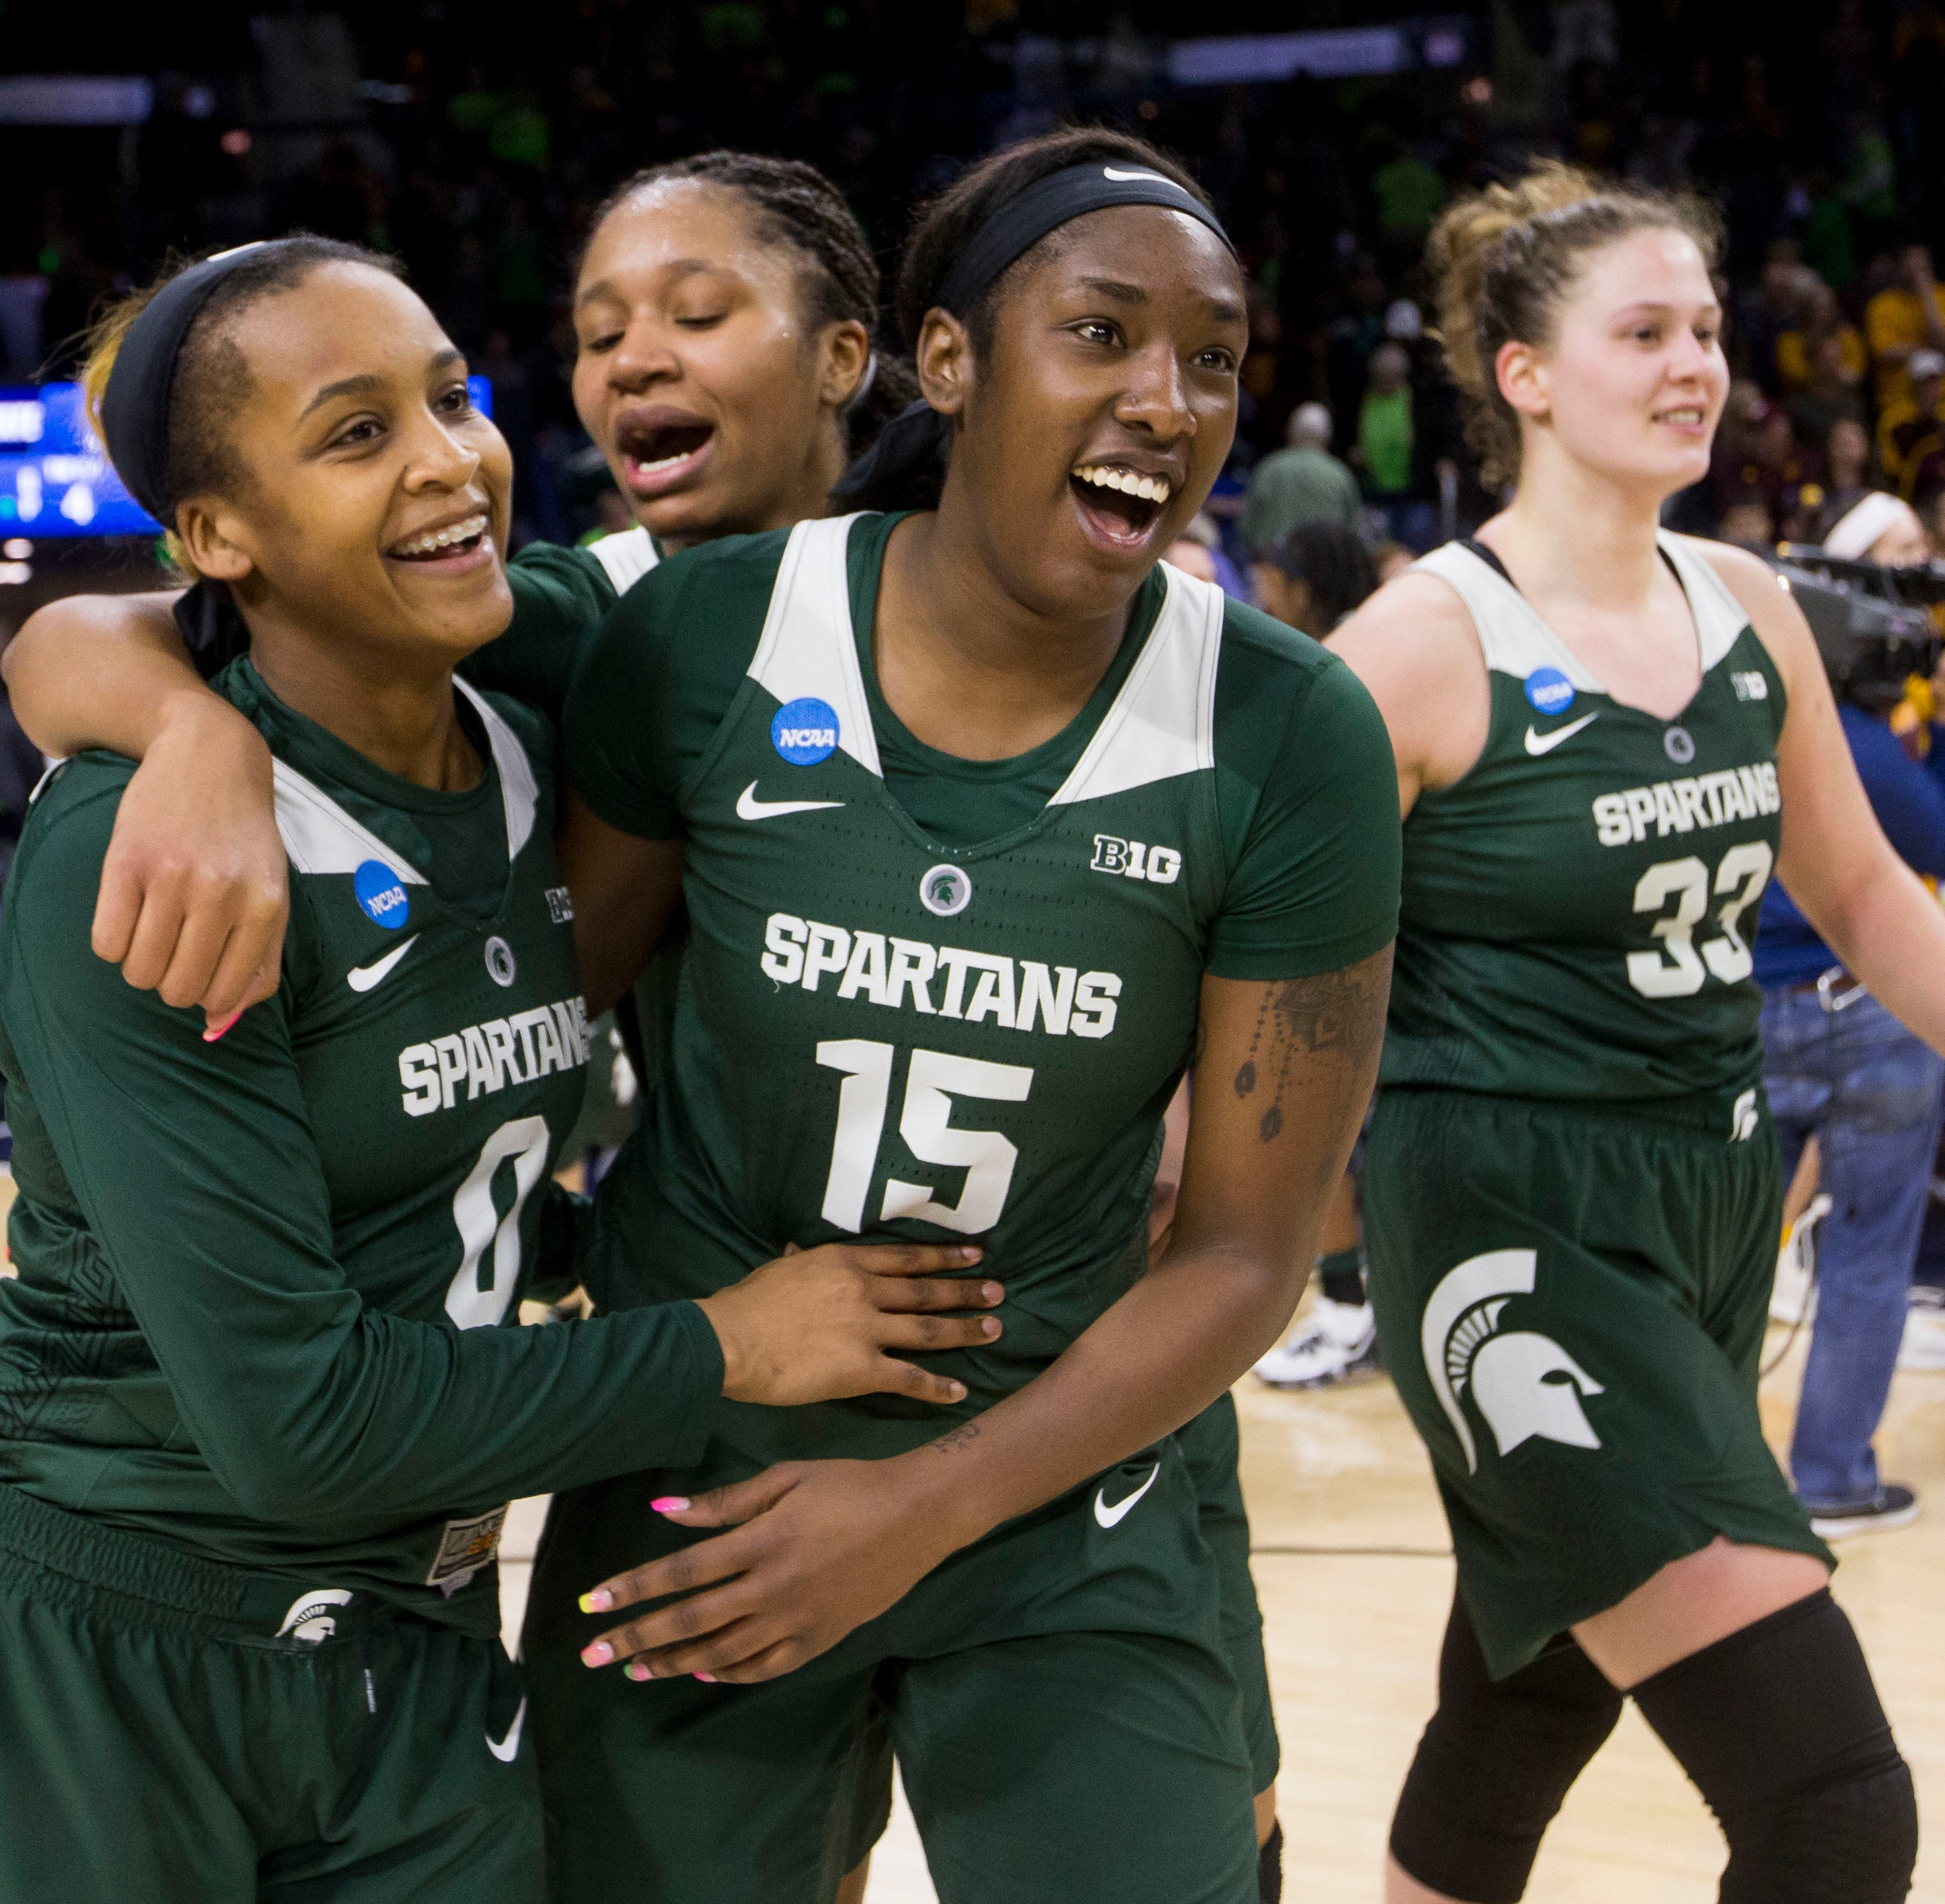 Michigan State vs. Notre Dame in women's NCAA tournament: Time, game info